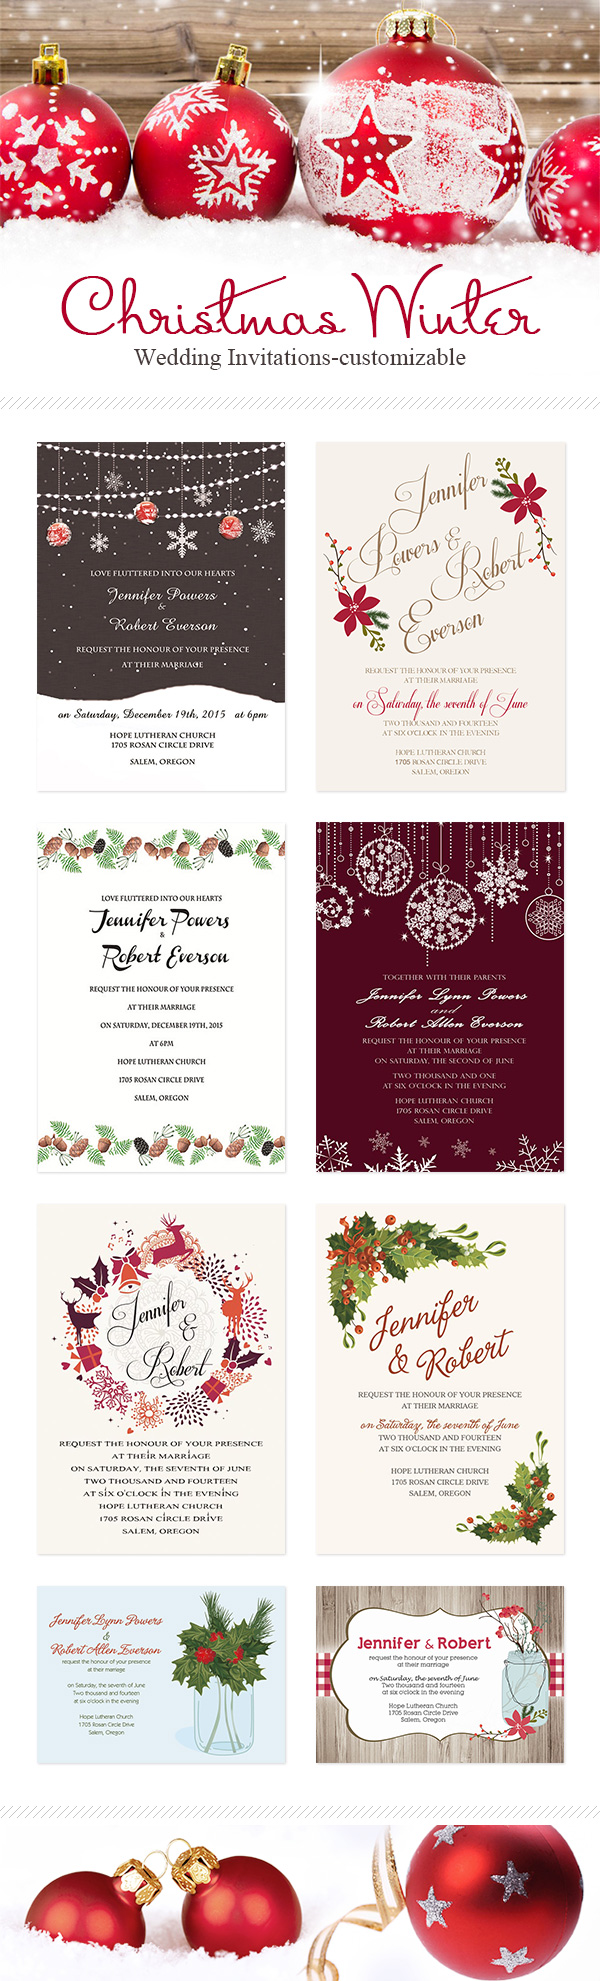 30 Awesome Winter Red Christmas Themed Festival Wedding Ideas ...